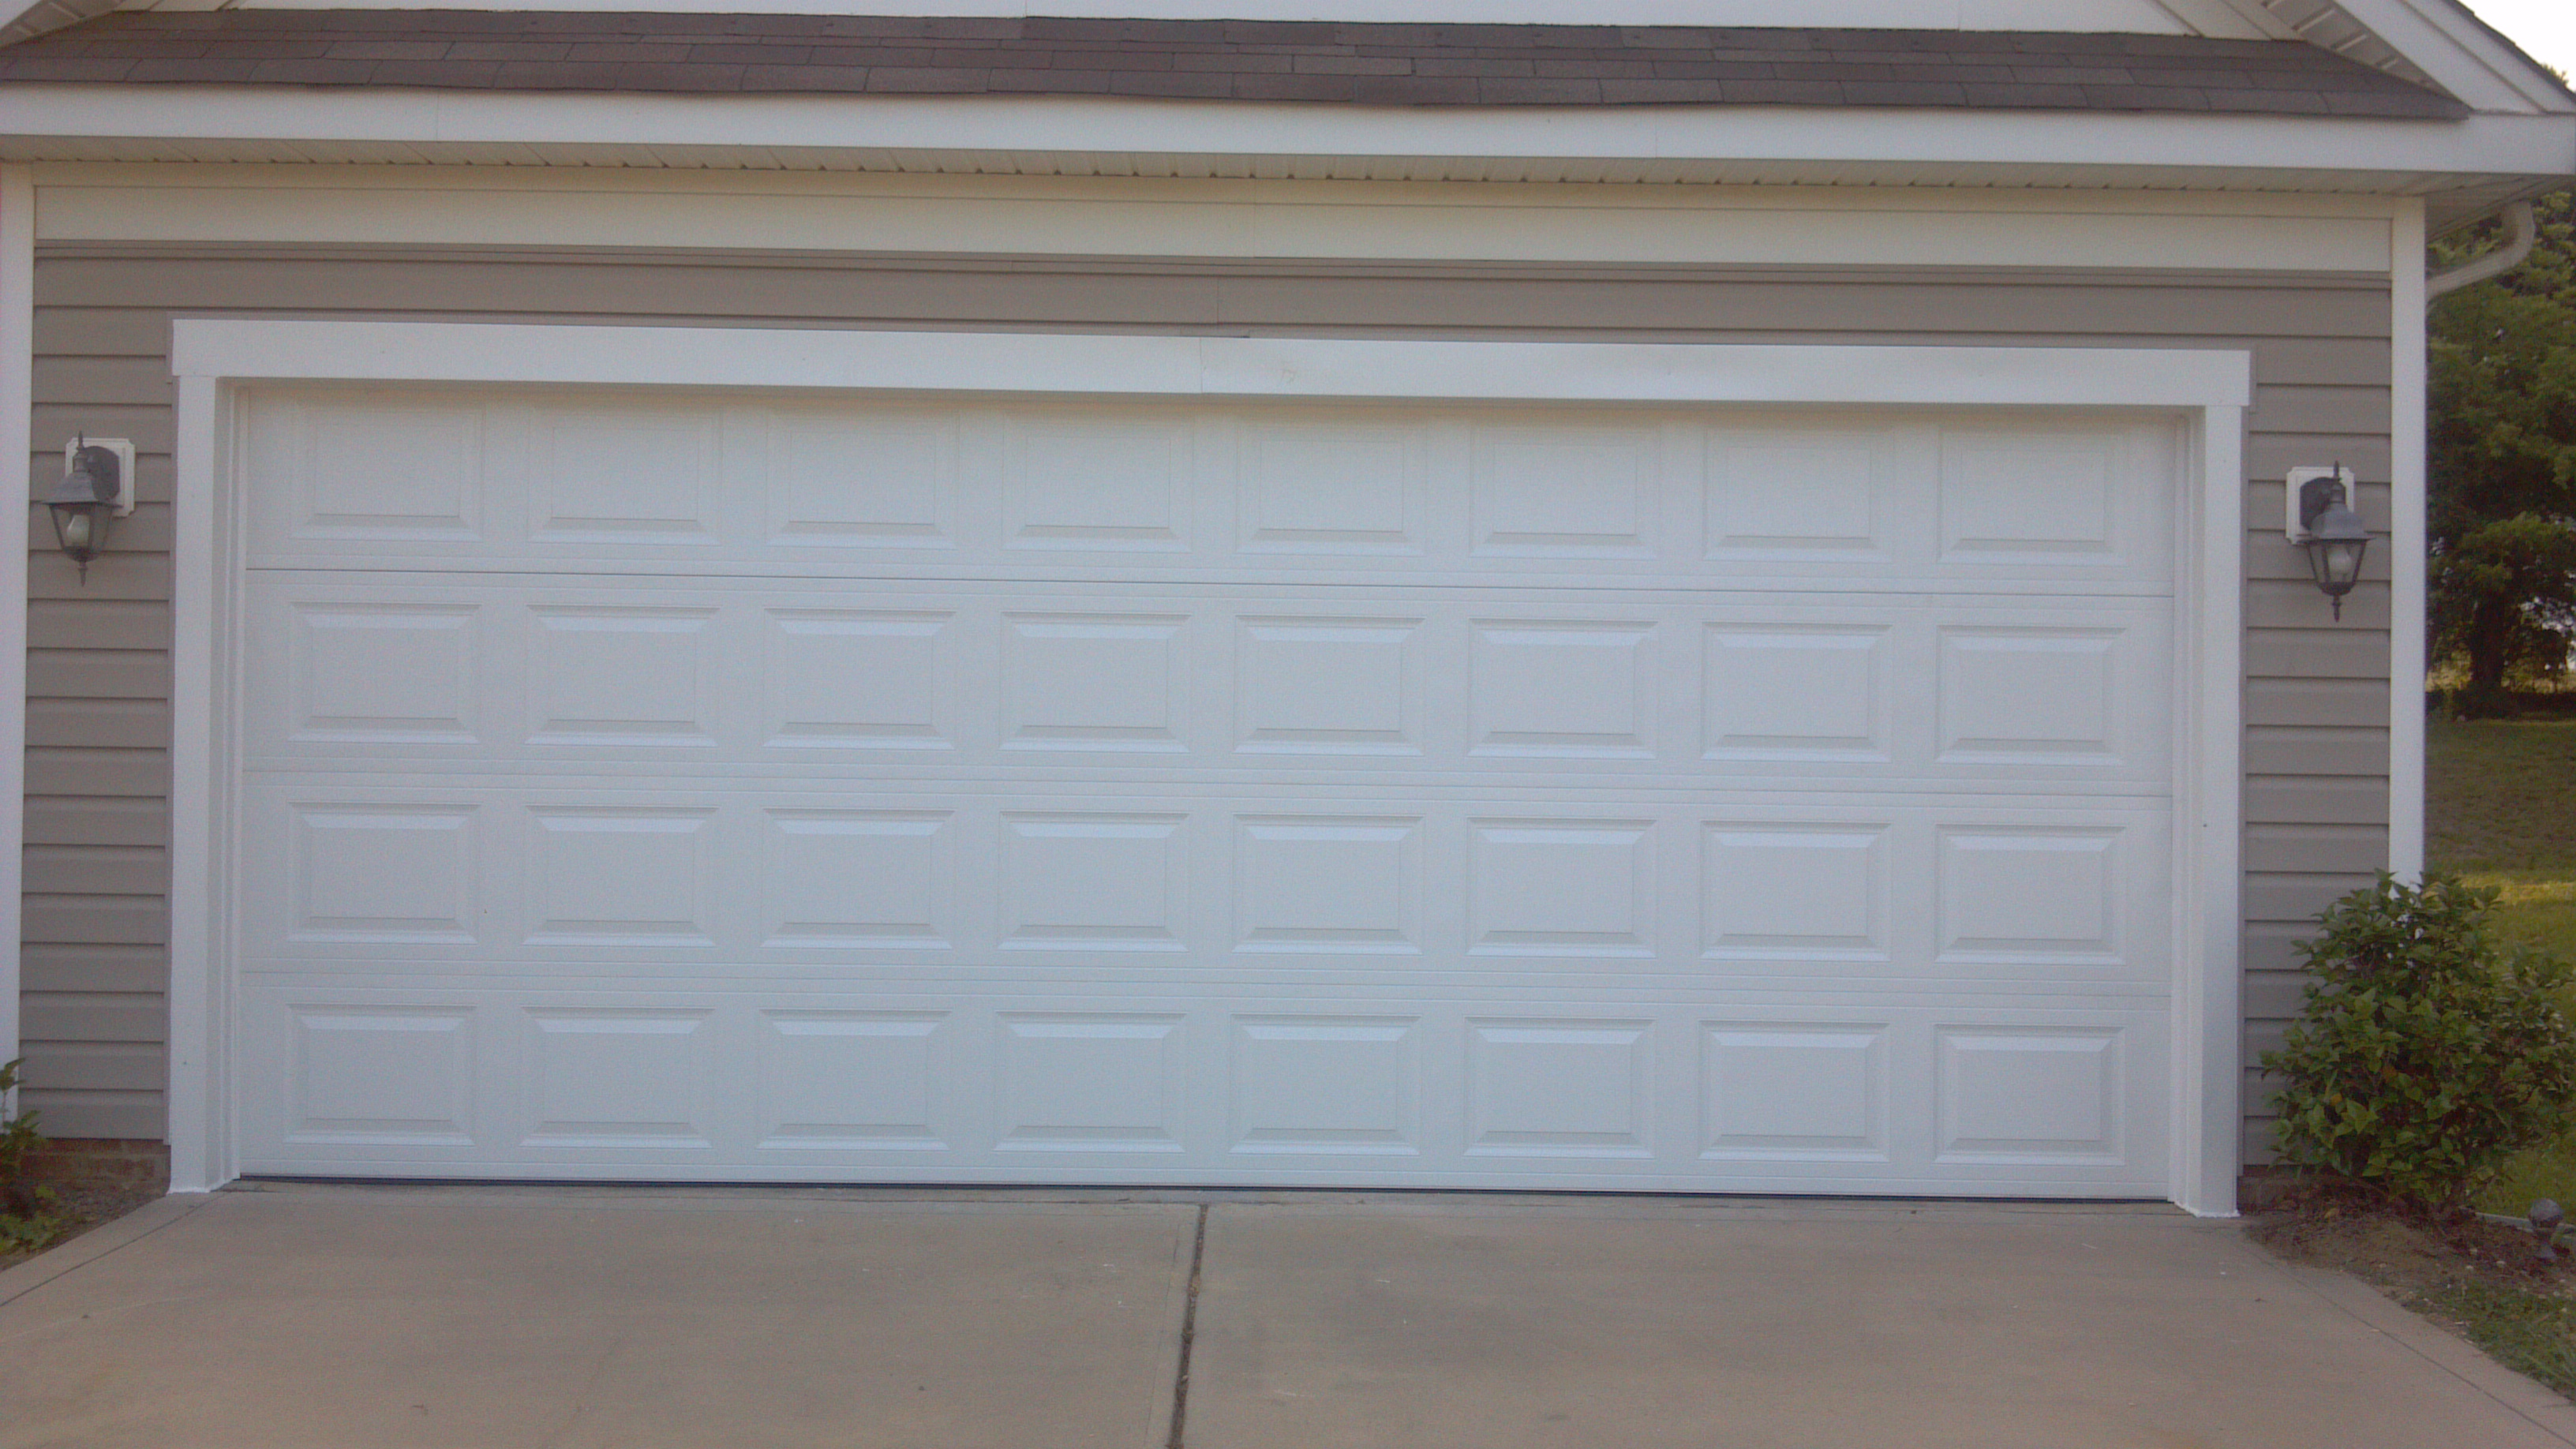 Garage doors double large and beautiful photos photo to for Garage doors designs